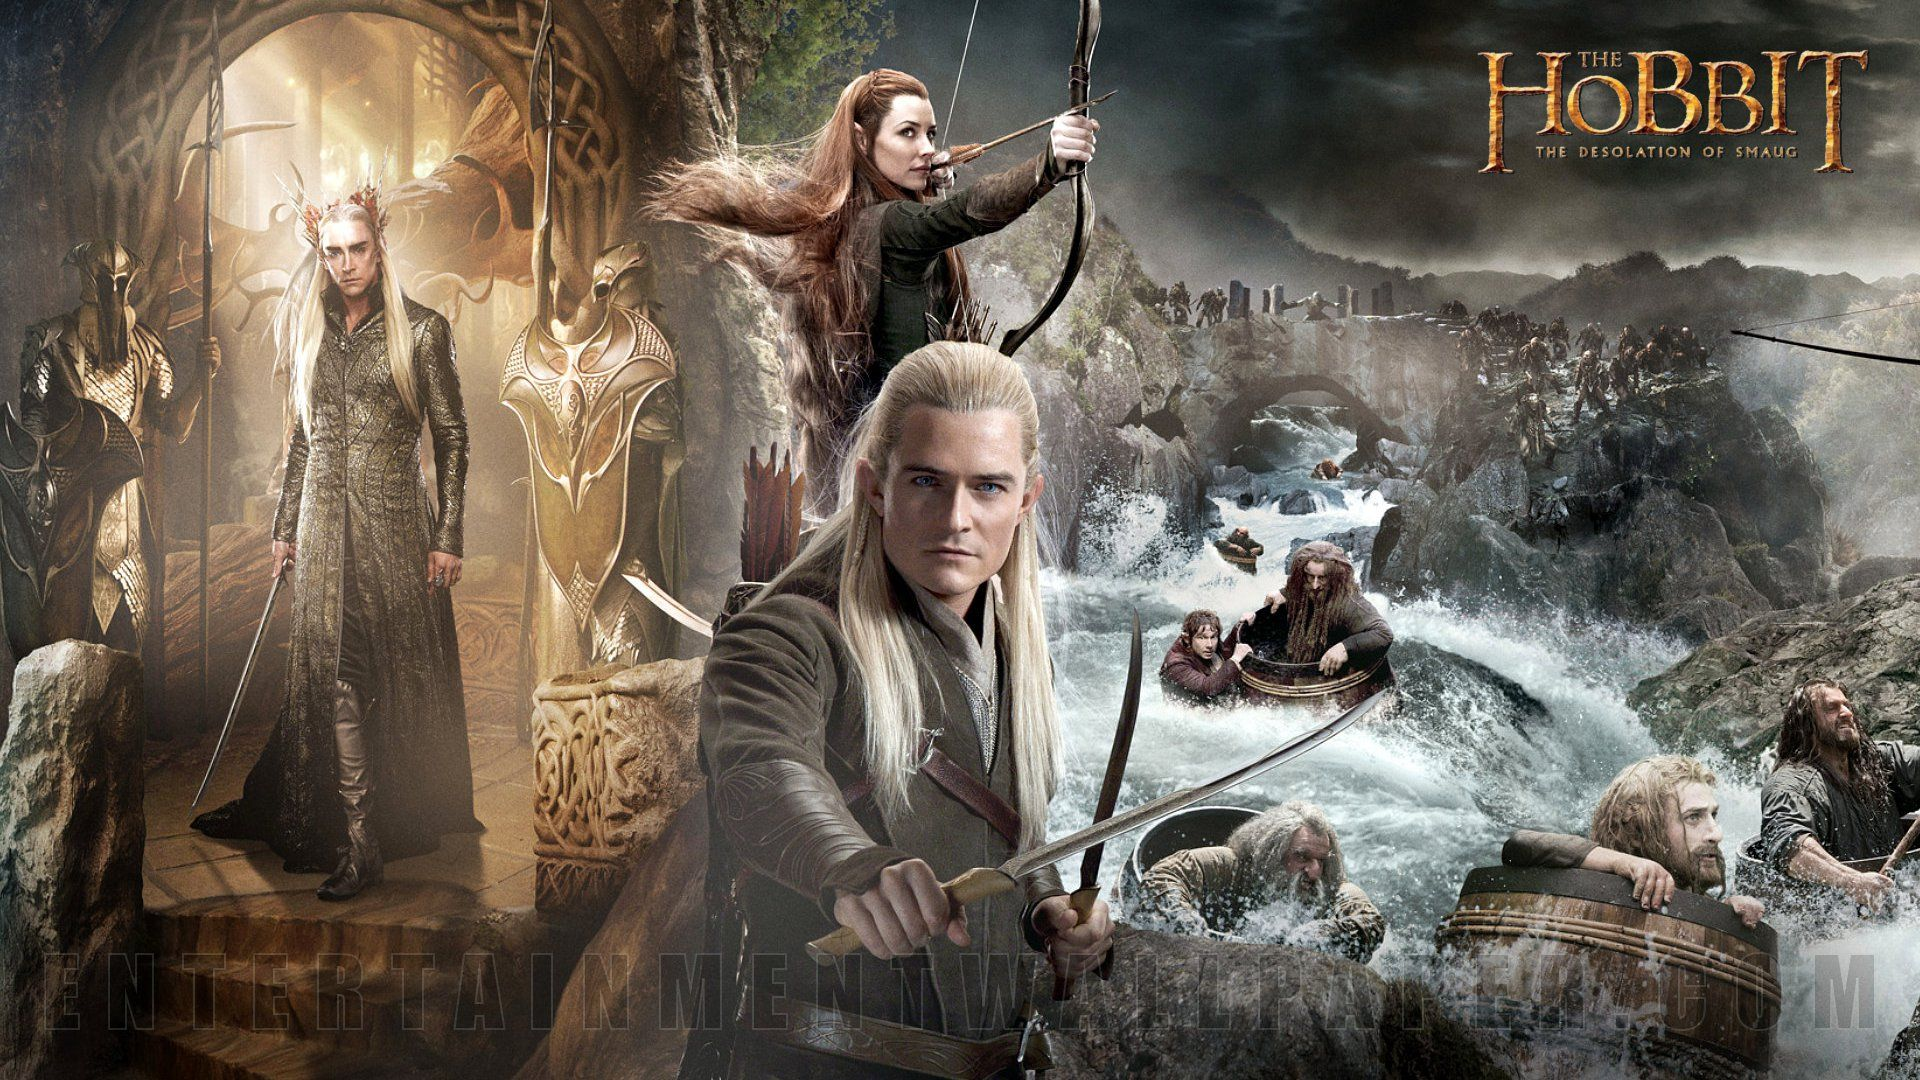 the hobbit the desolation of smaug full movie download free